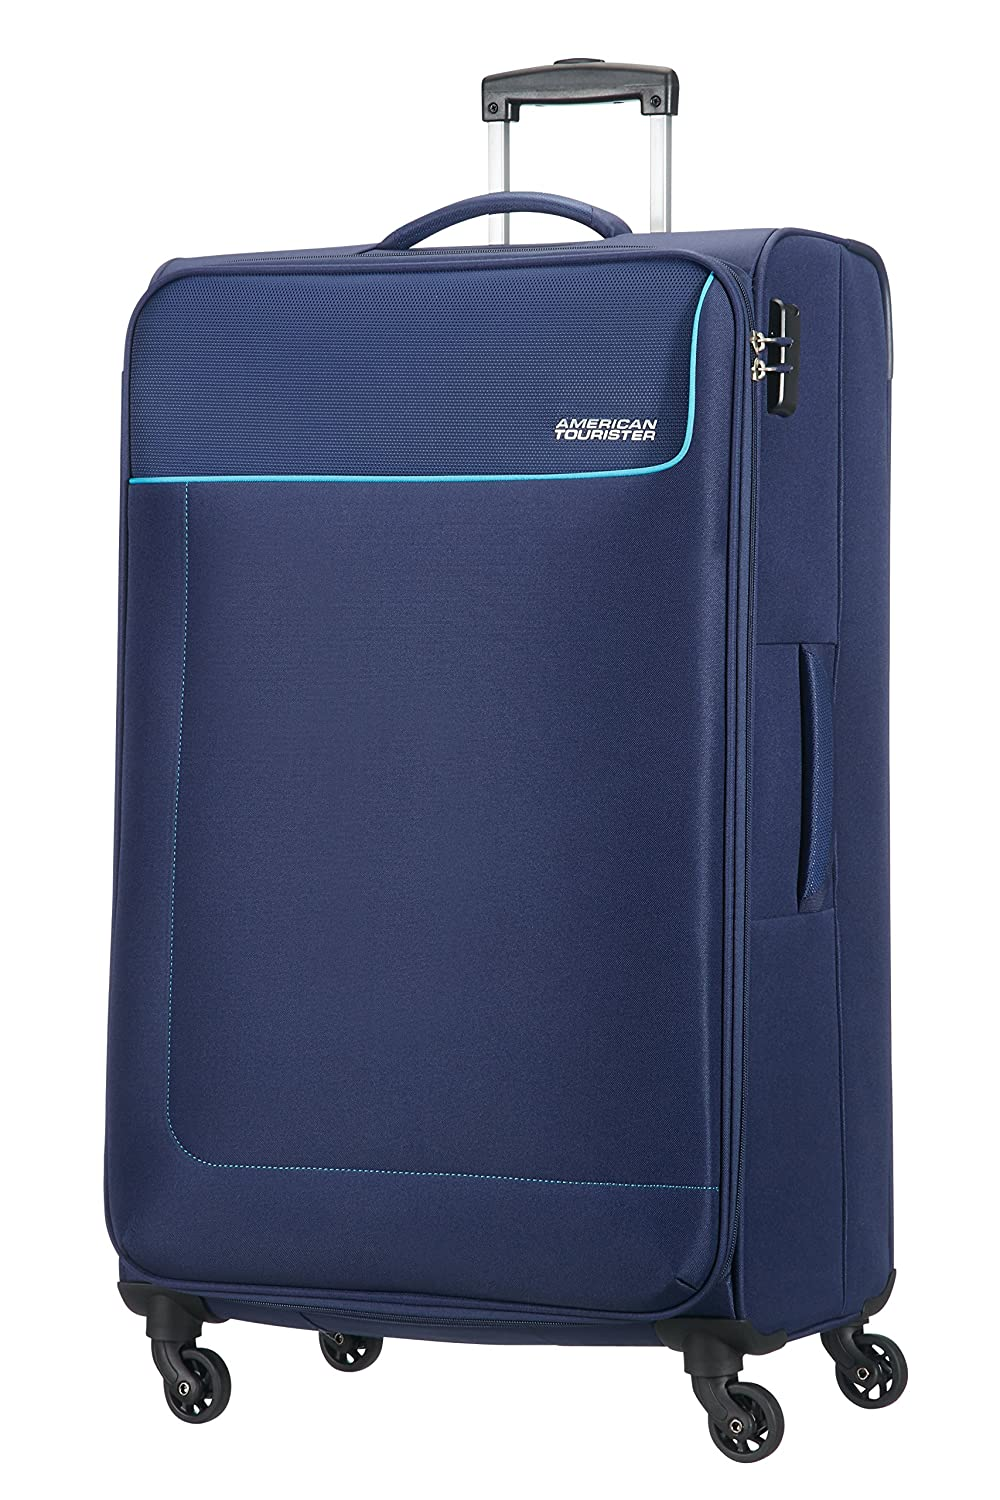 Amazon.com | American Tourister Funshine 4 Roues 79/29 Valise, 79 cm, 99, 5 L, Orion Blue | Suitcases